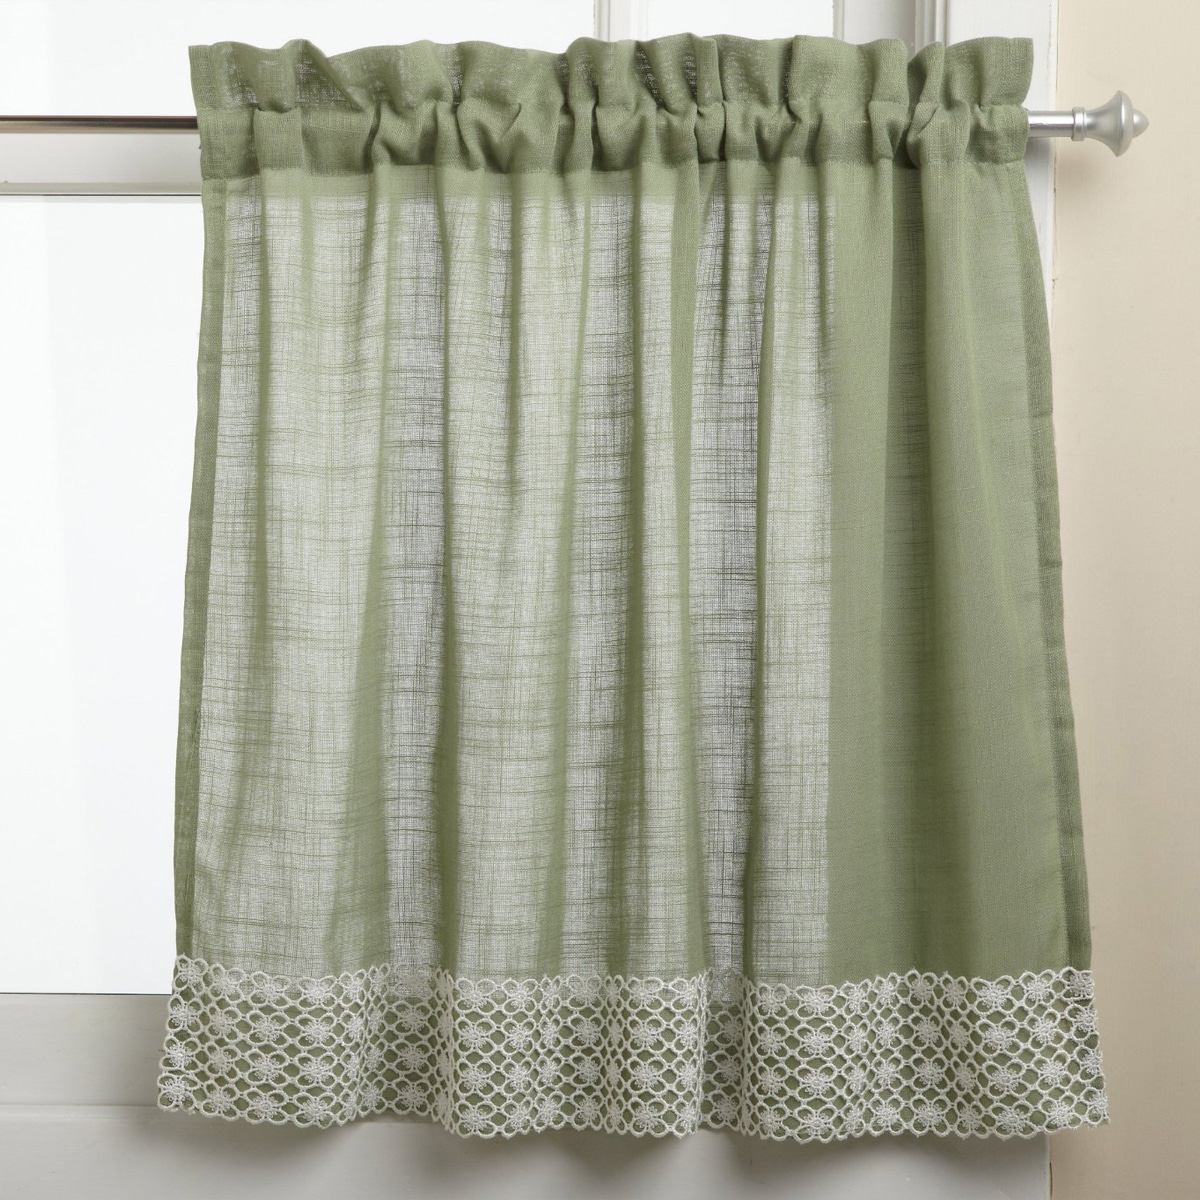 Sweet Home Collection Sage Country Style White Daisy Lace For Country Style Curtain Parts With White Daisy Lace Accent (View 19 of 20)